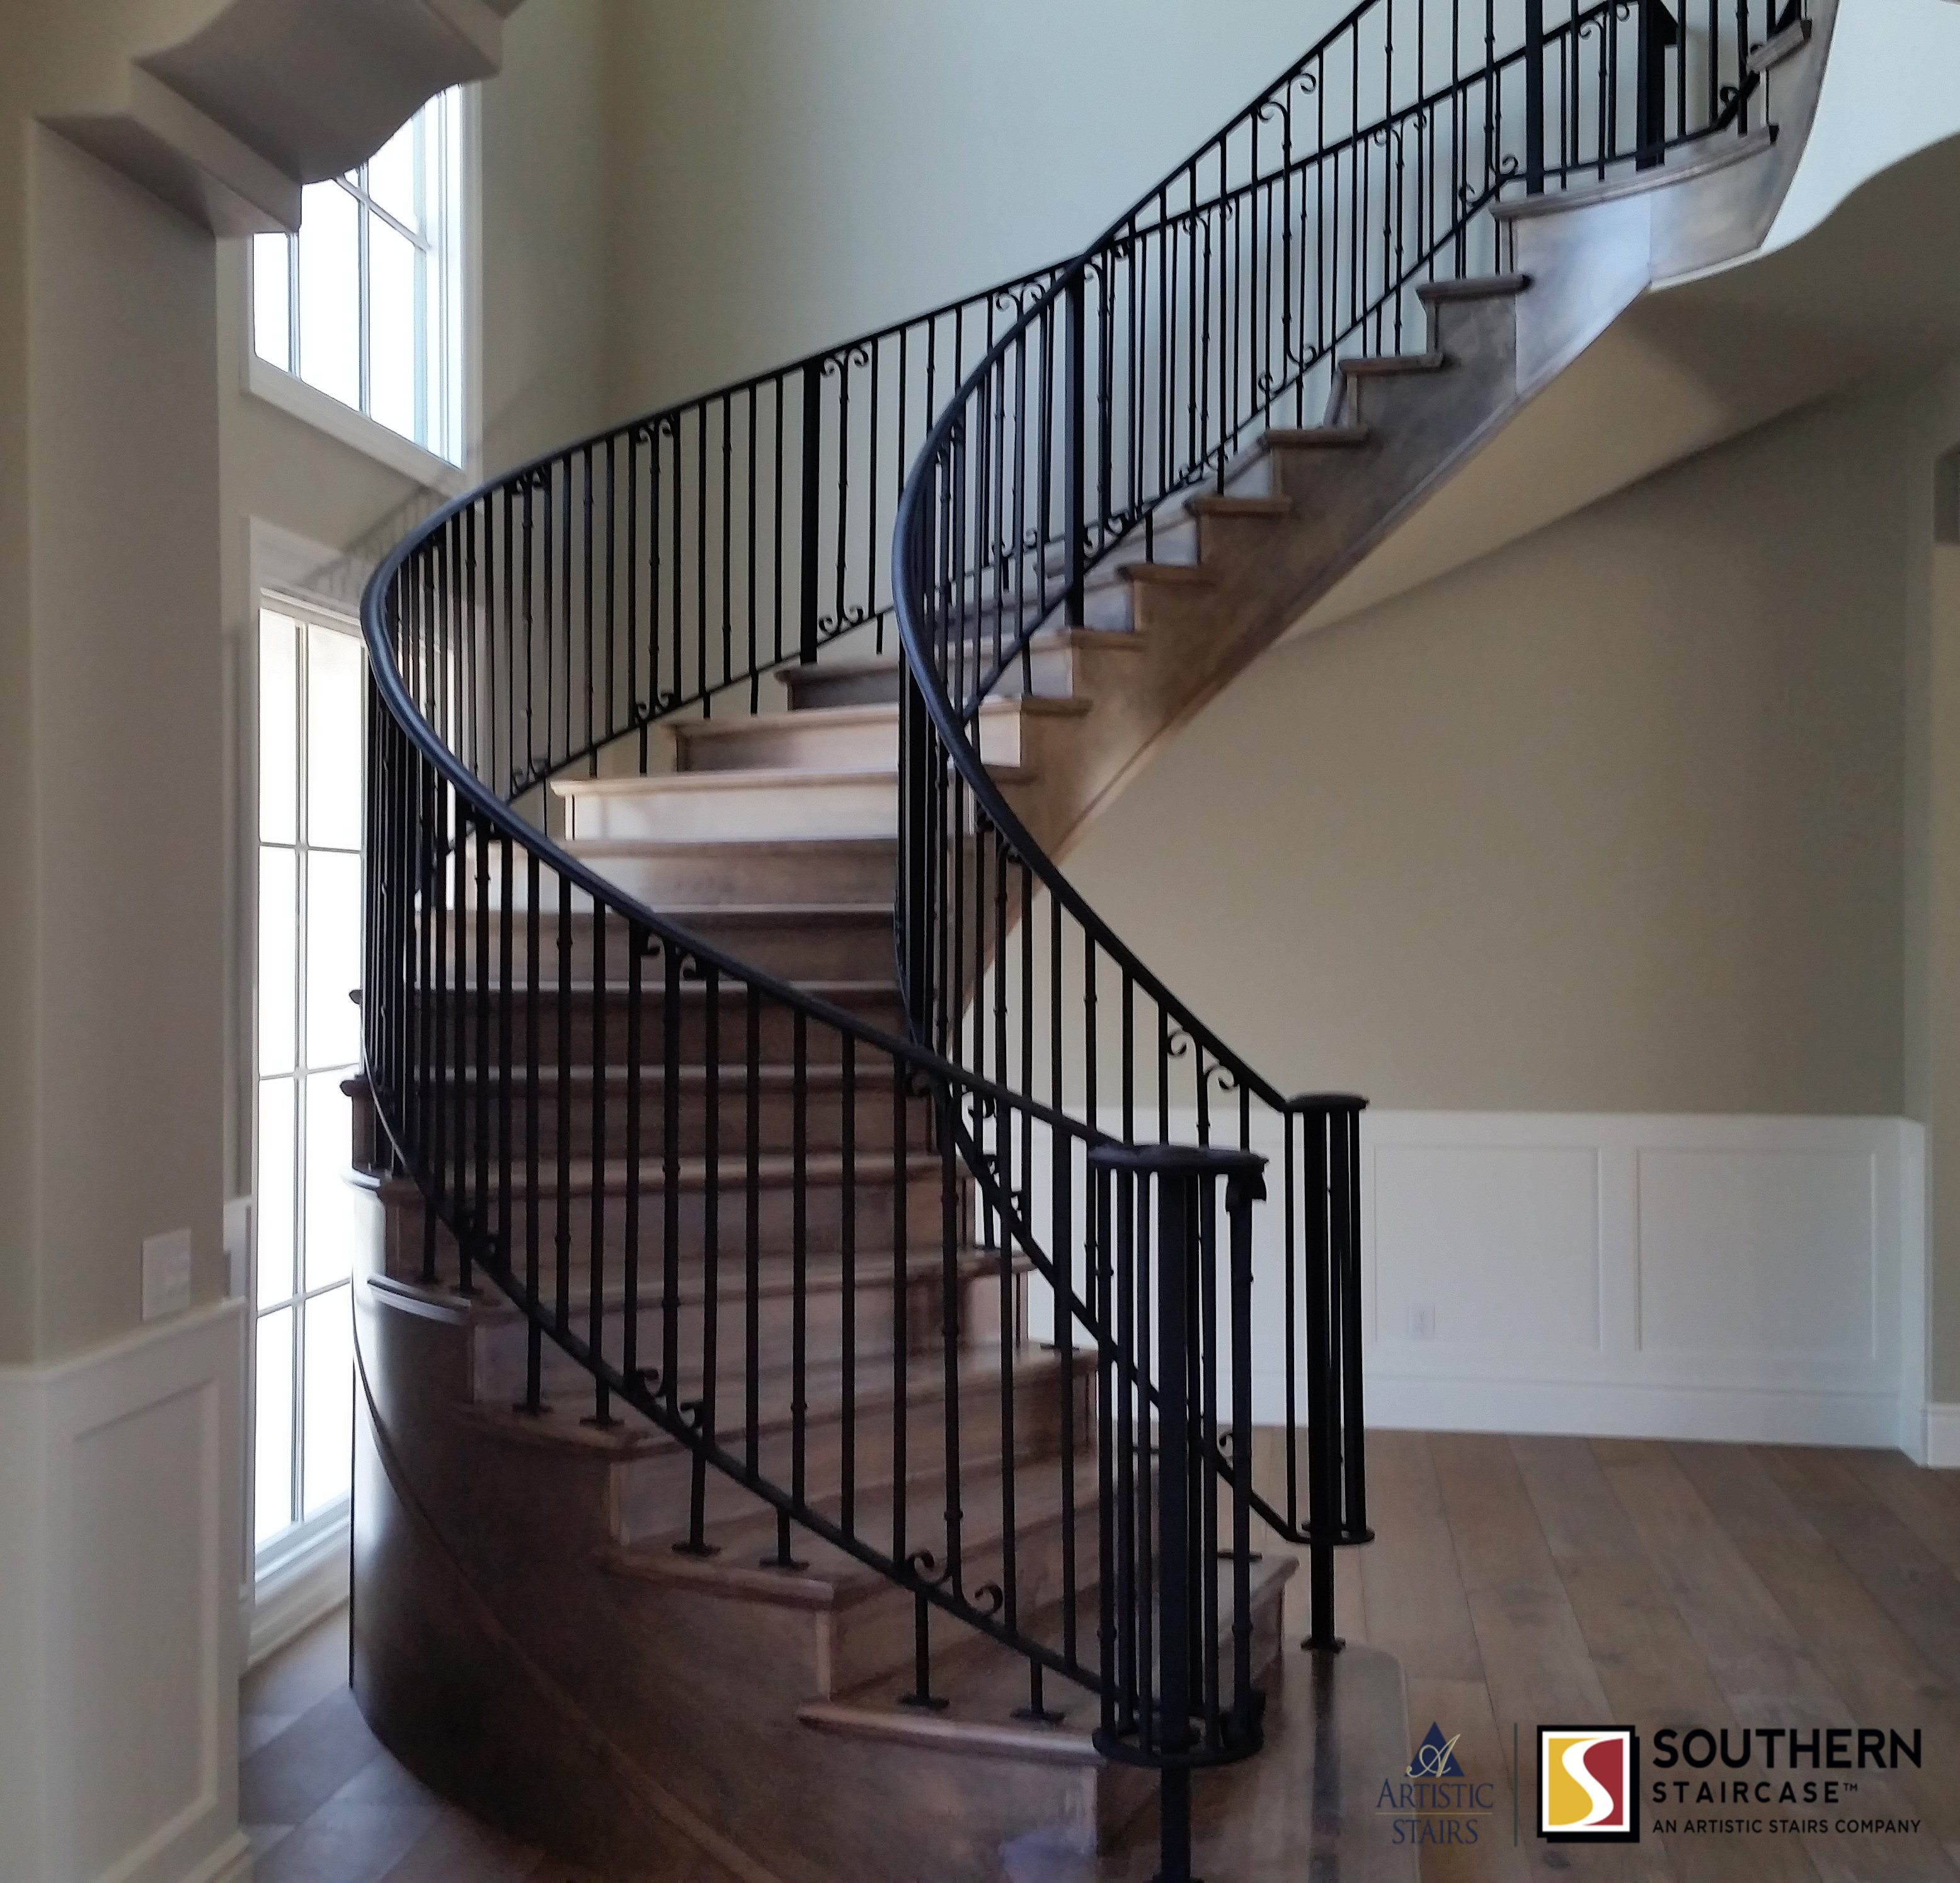 Best Curved Stairs In 2020 Wrought Iron Stairs Iron Stair 400 x 300